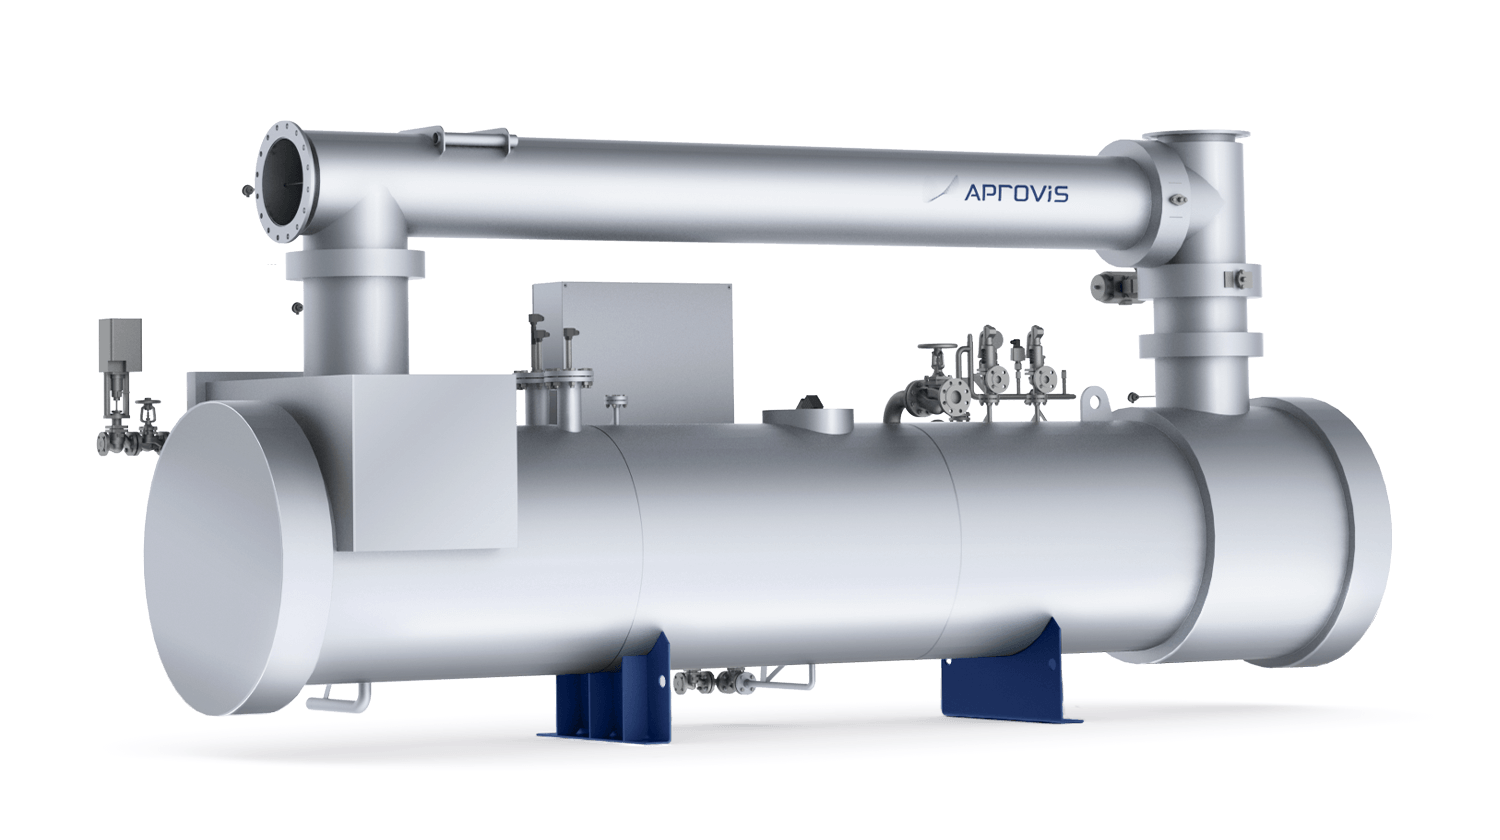 APROVIS steam generators